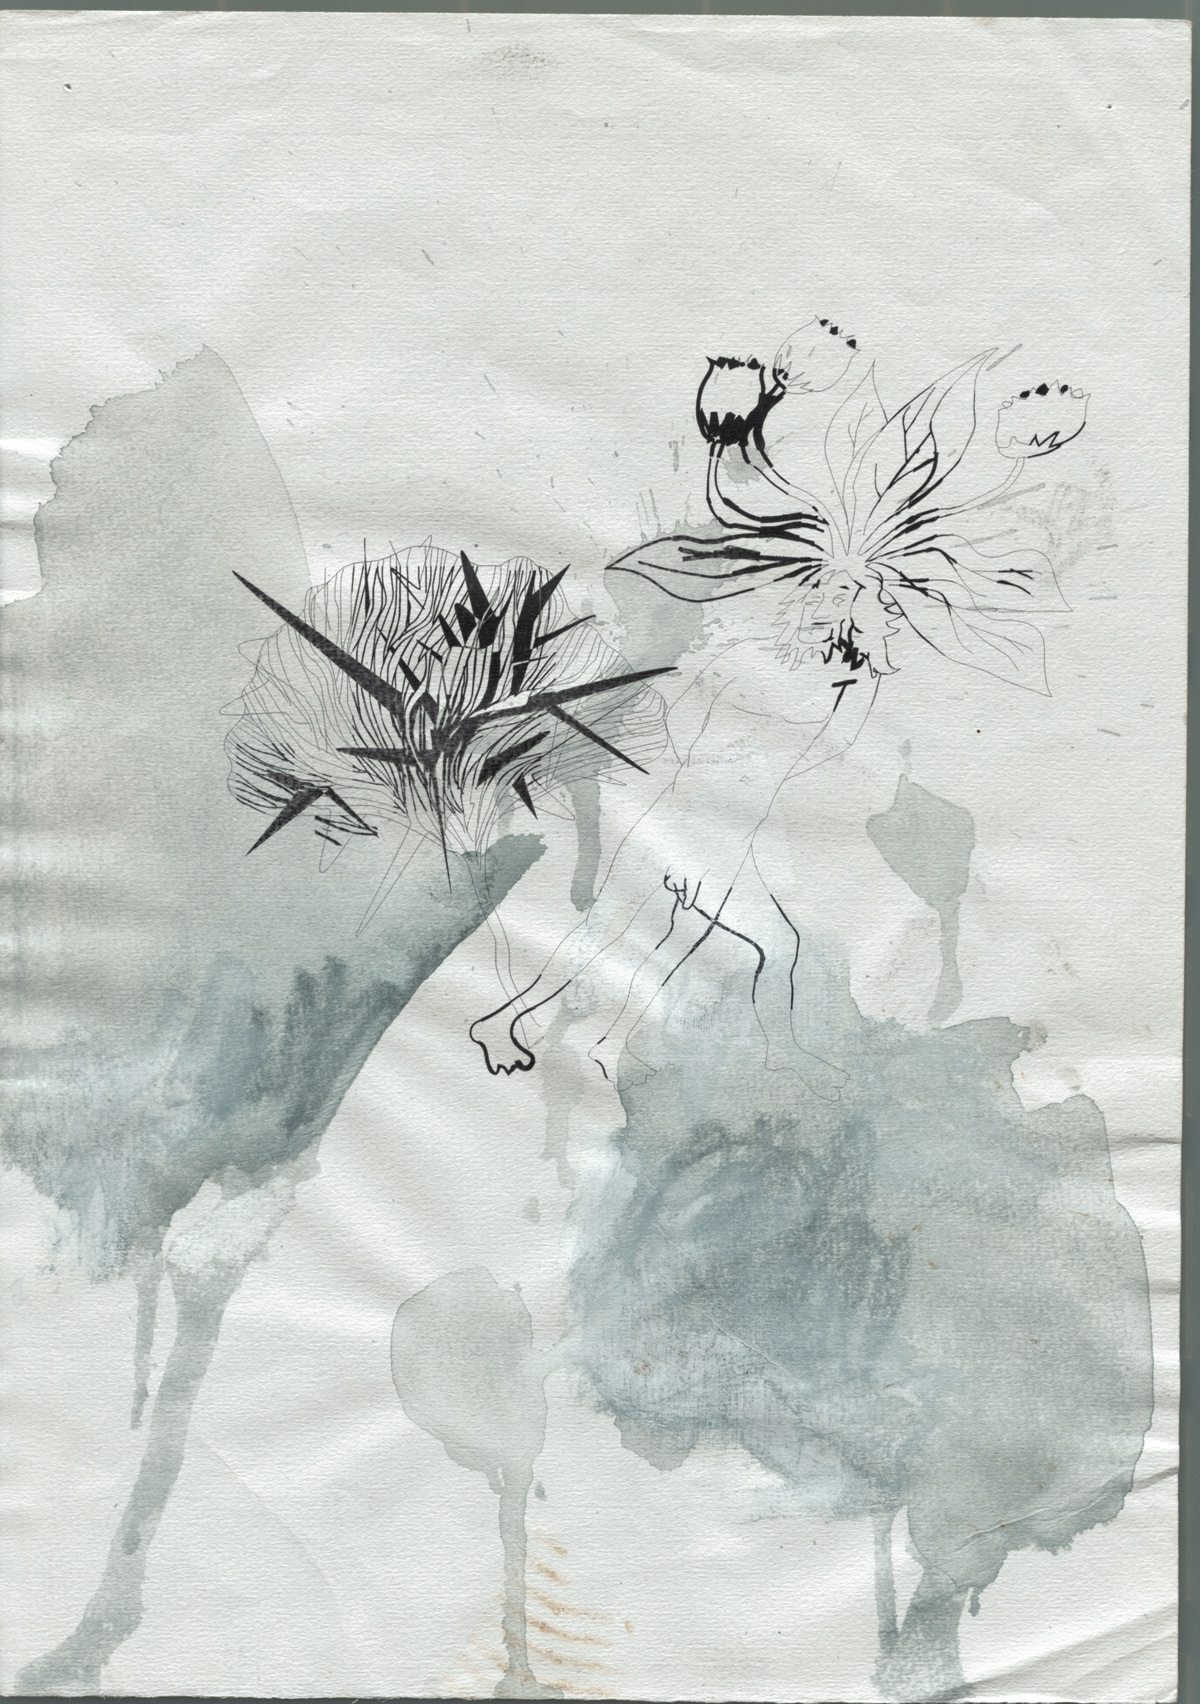 1999 Chimaere paper AndreasGehlen - Untitled / Chimaeras III/ XI